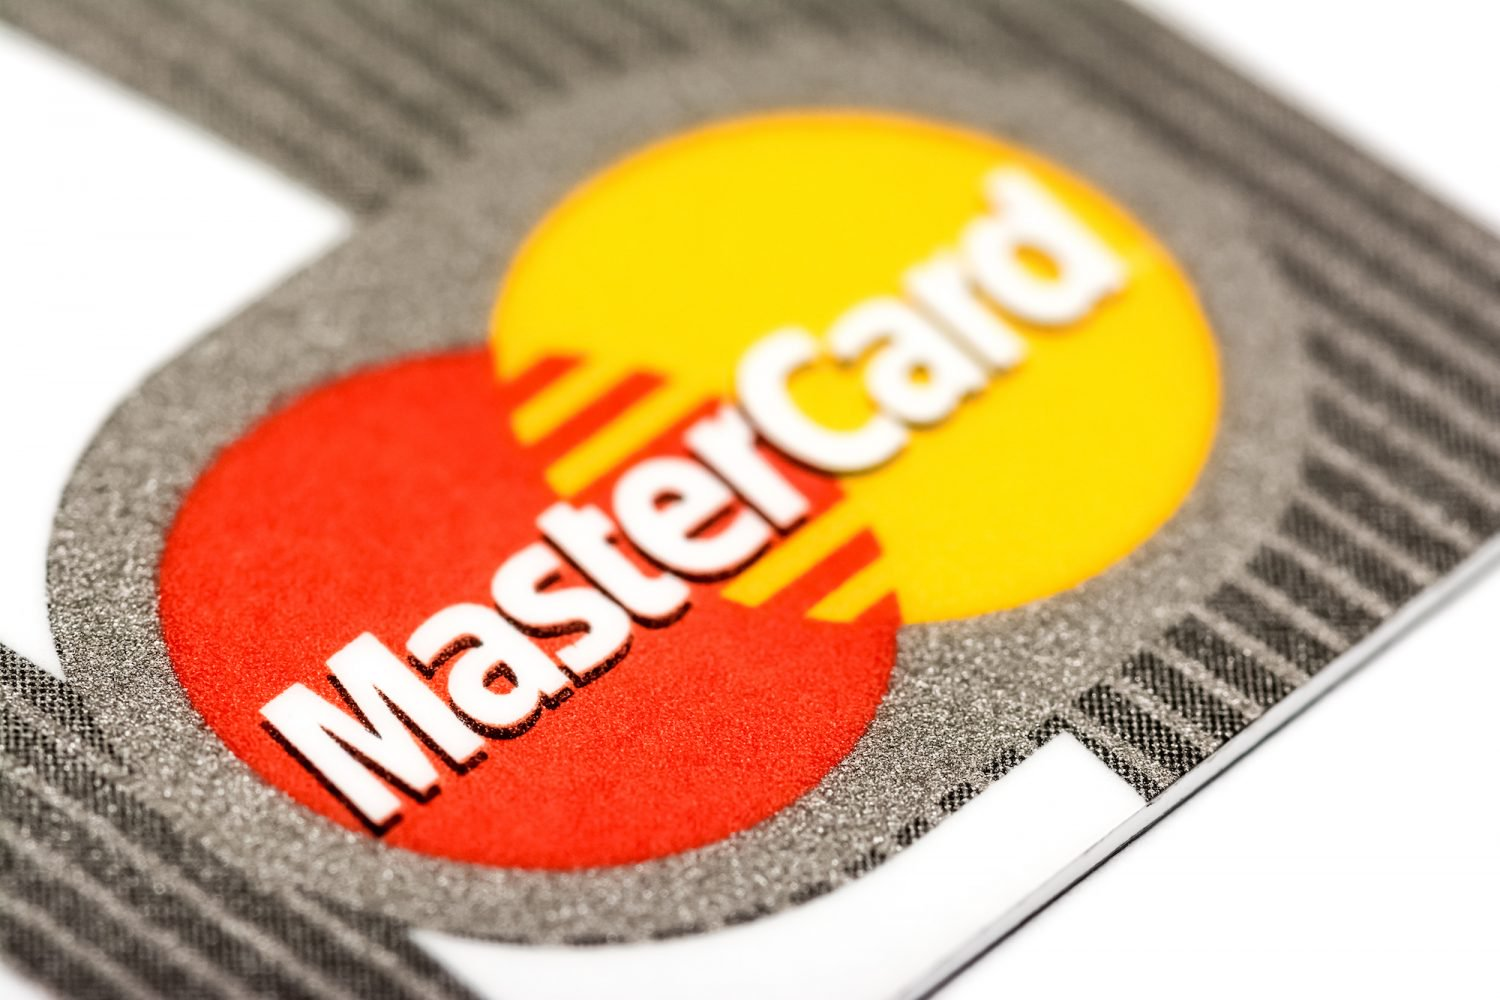 Mastercard Patent Would Put Credit Cards on a Public Blockchain